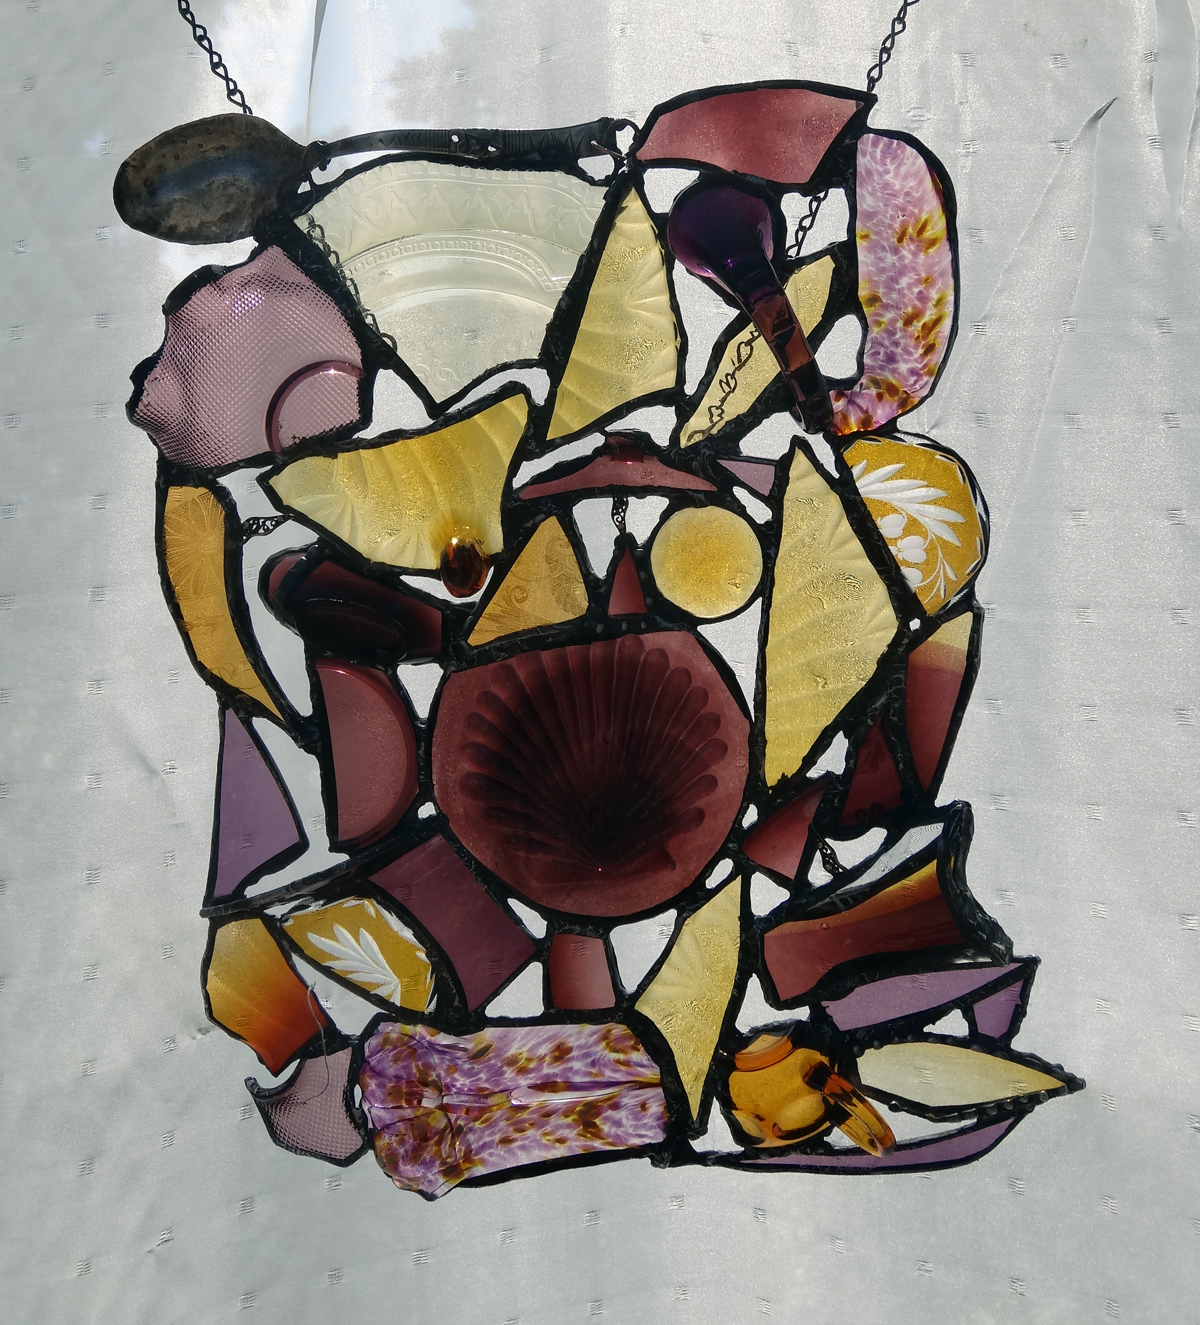 """YESTERDAYS TREASURES ~ 18""""X14"""" Repurposed glass and hand-forged metals"""